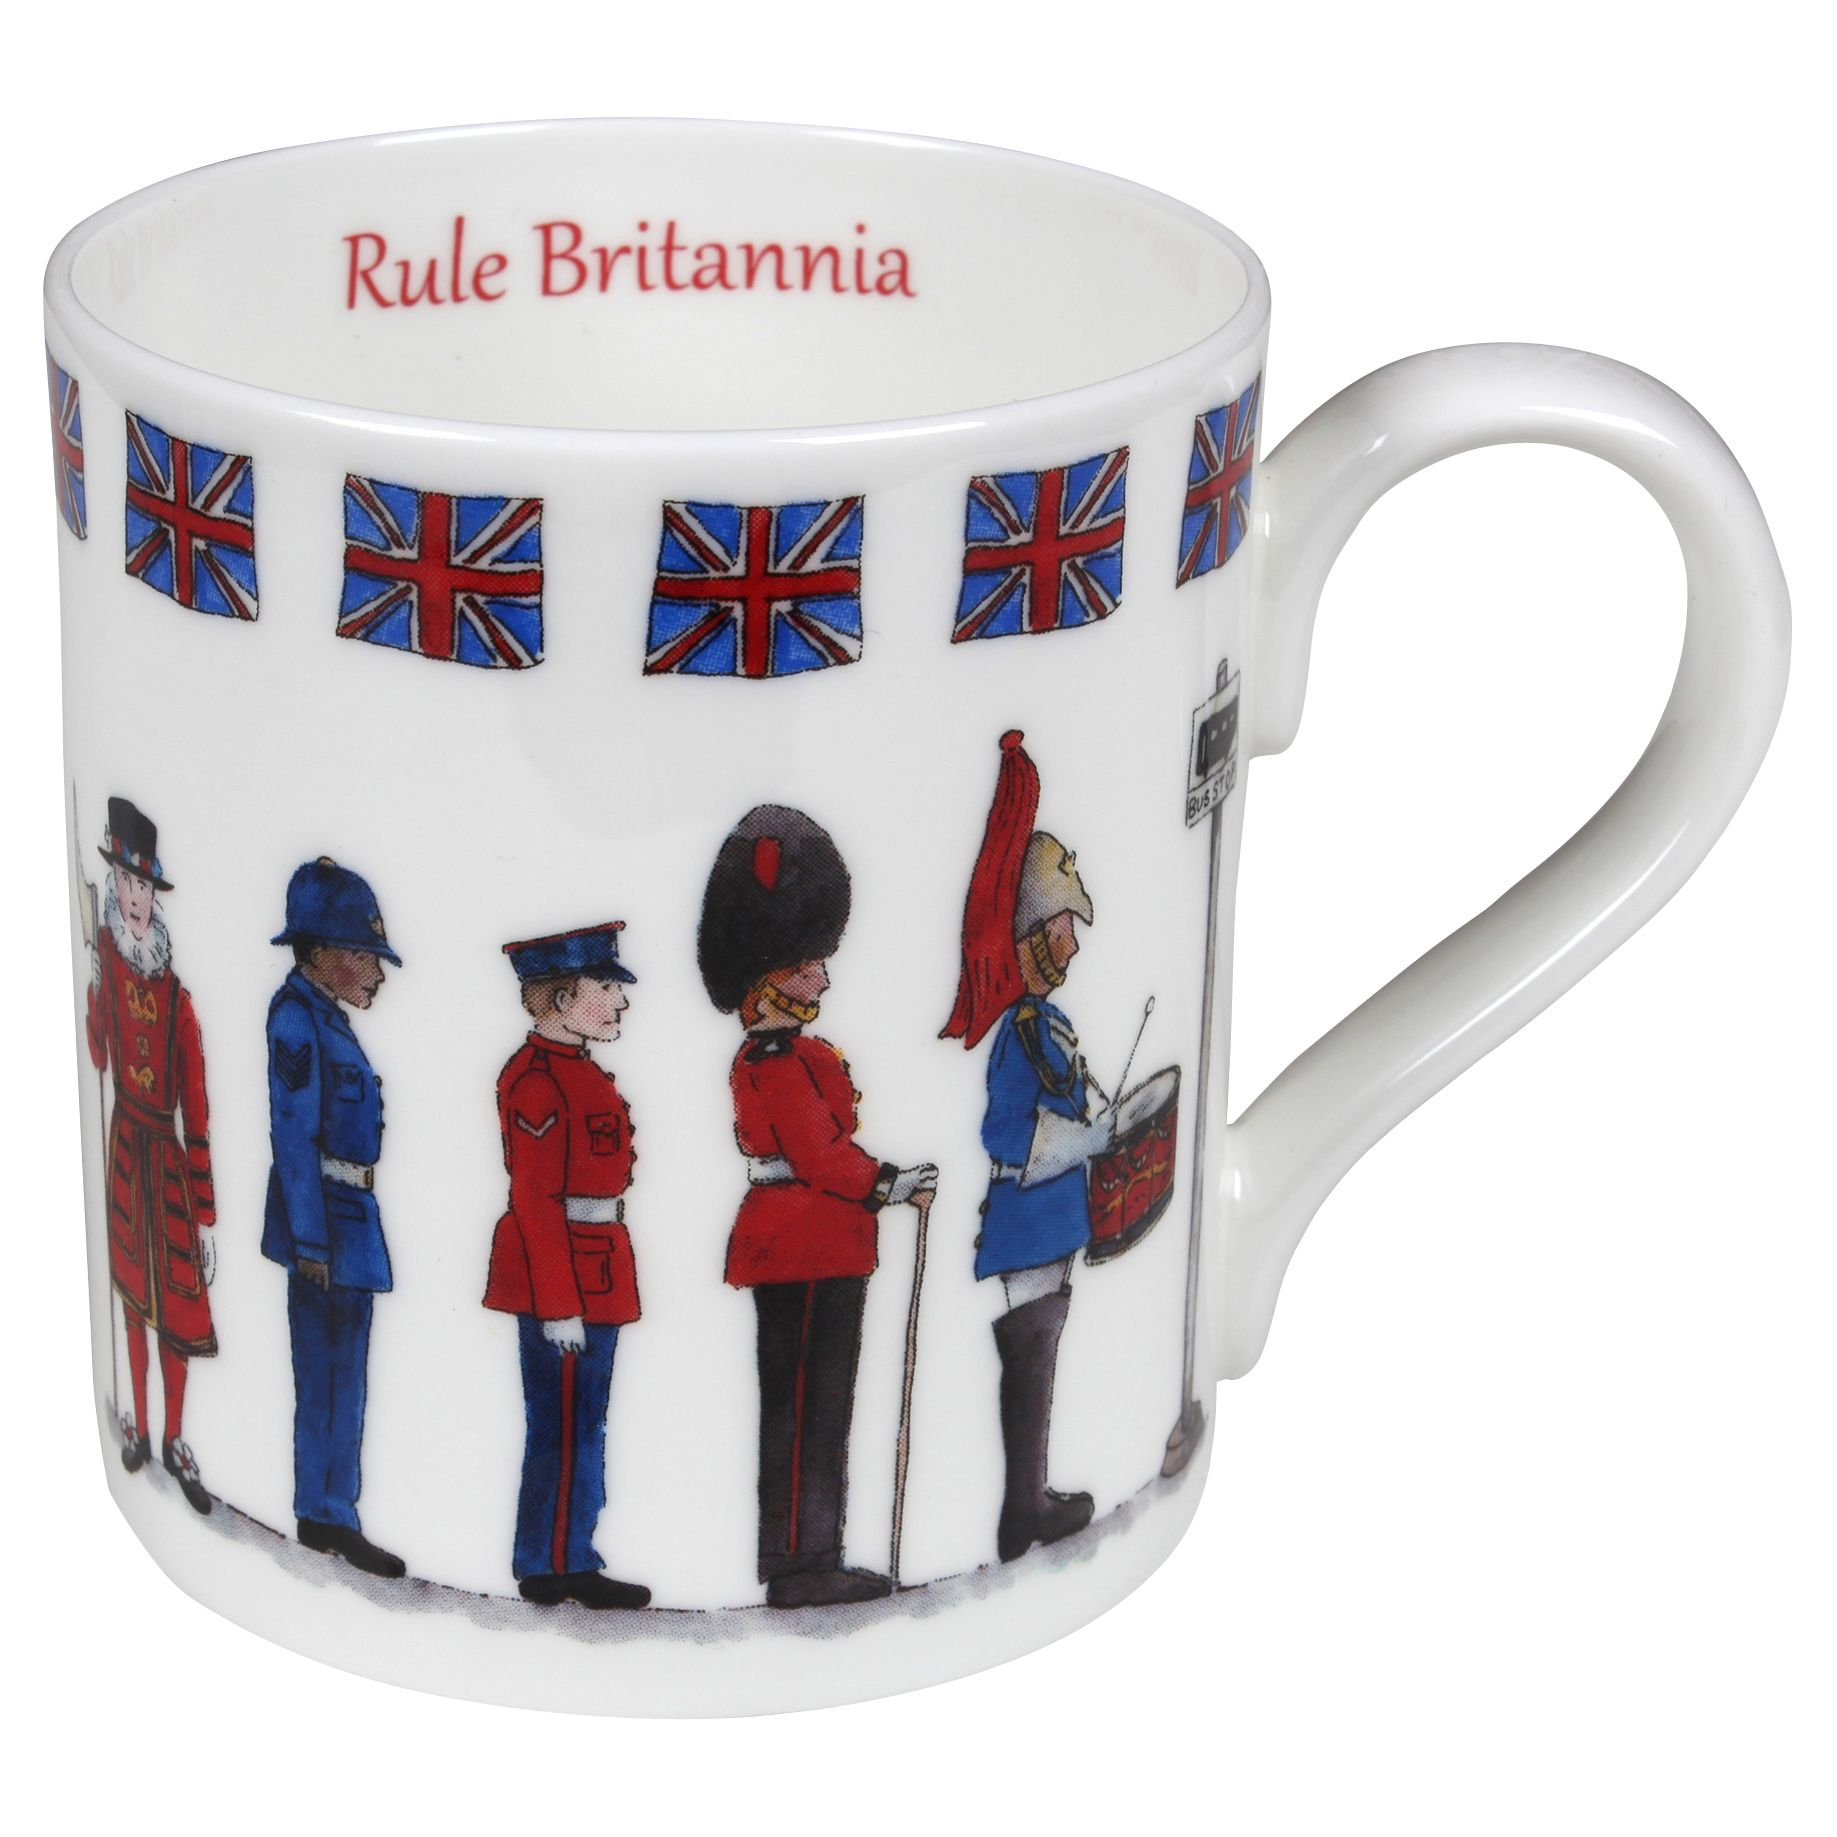 Milly Green Milly Green Rule Britannia China Mug